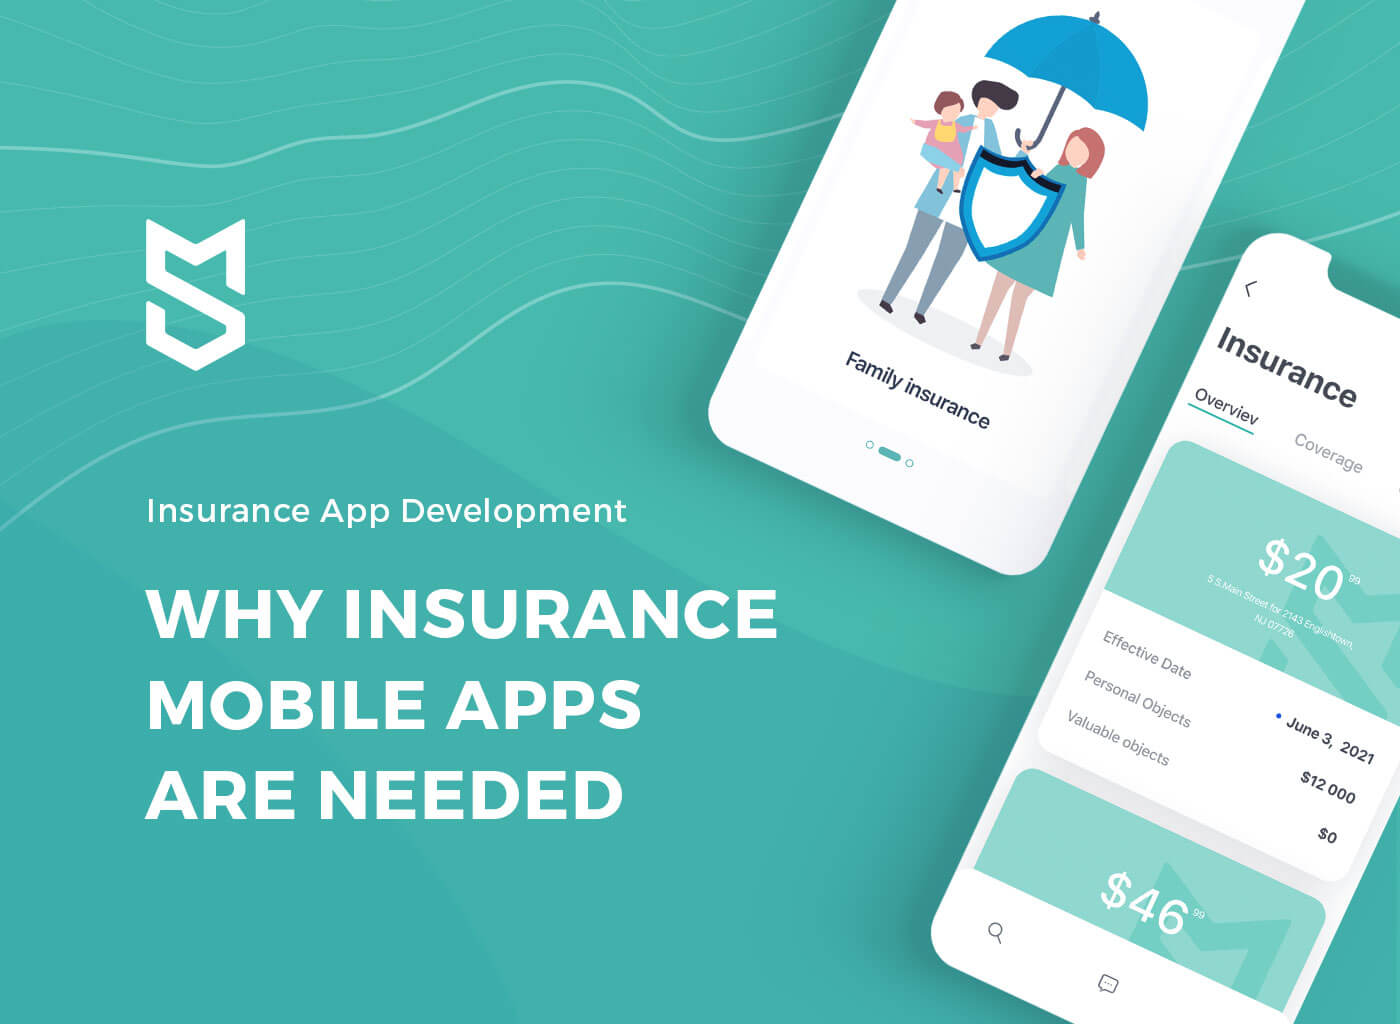 Insurance App Development: Why Insurance Mobile Apps Are Needed and How to Build One